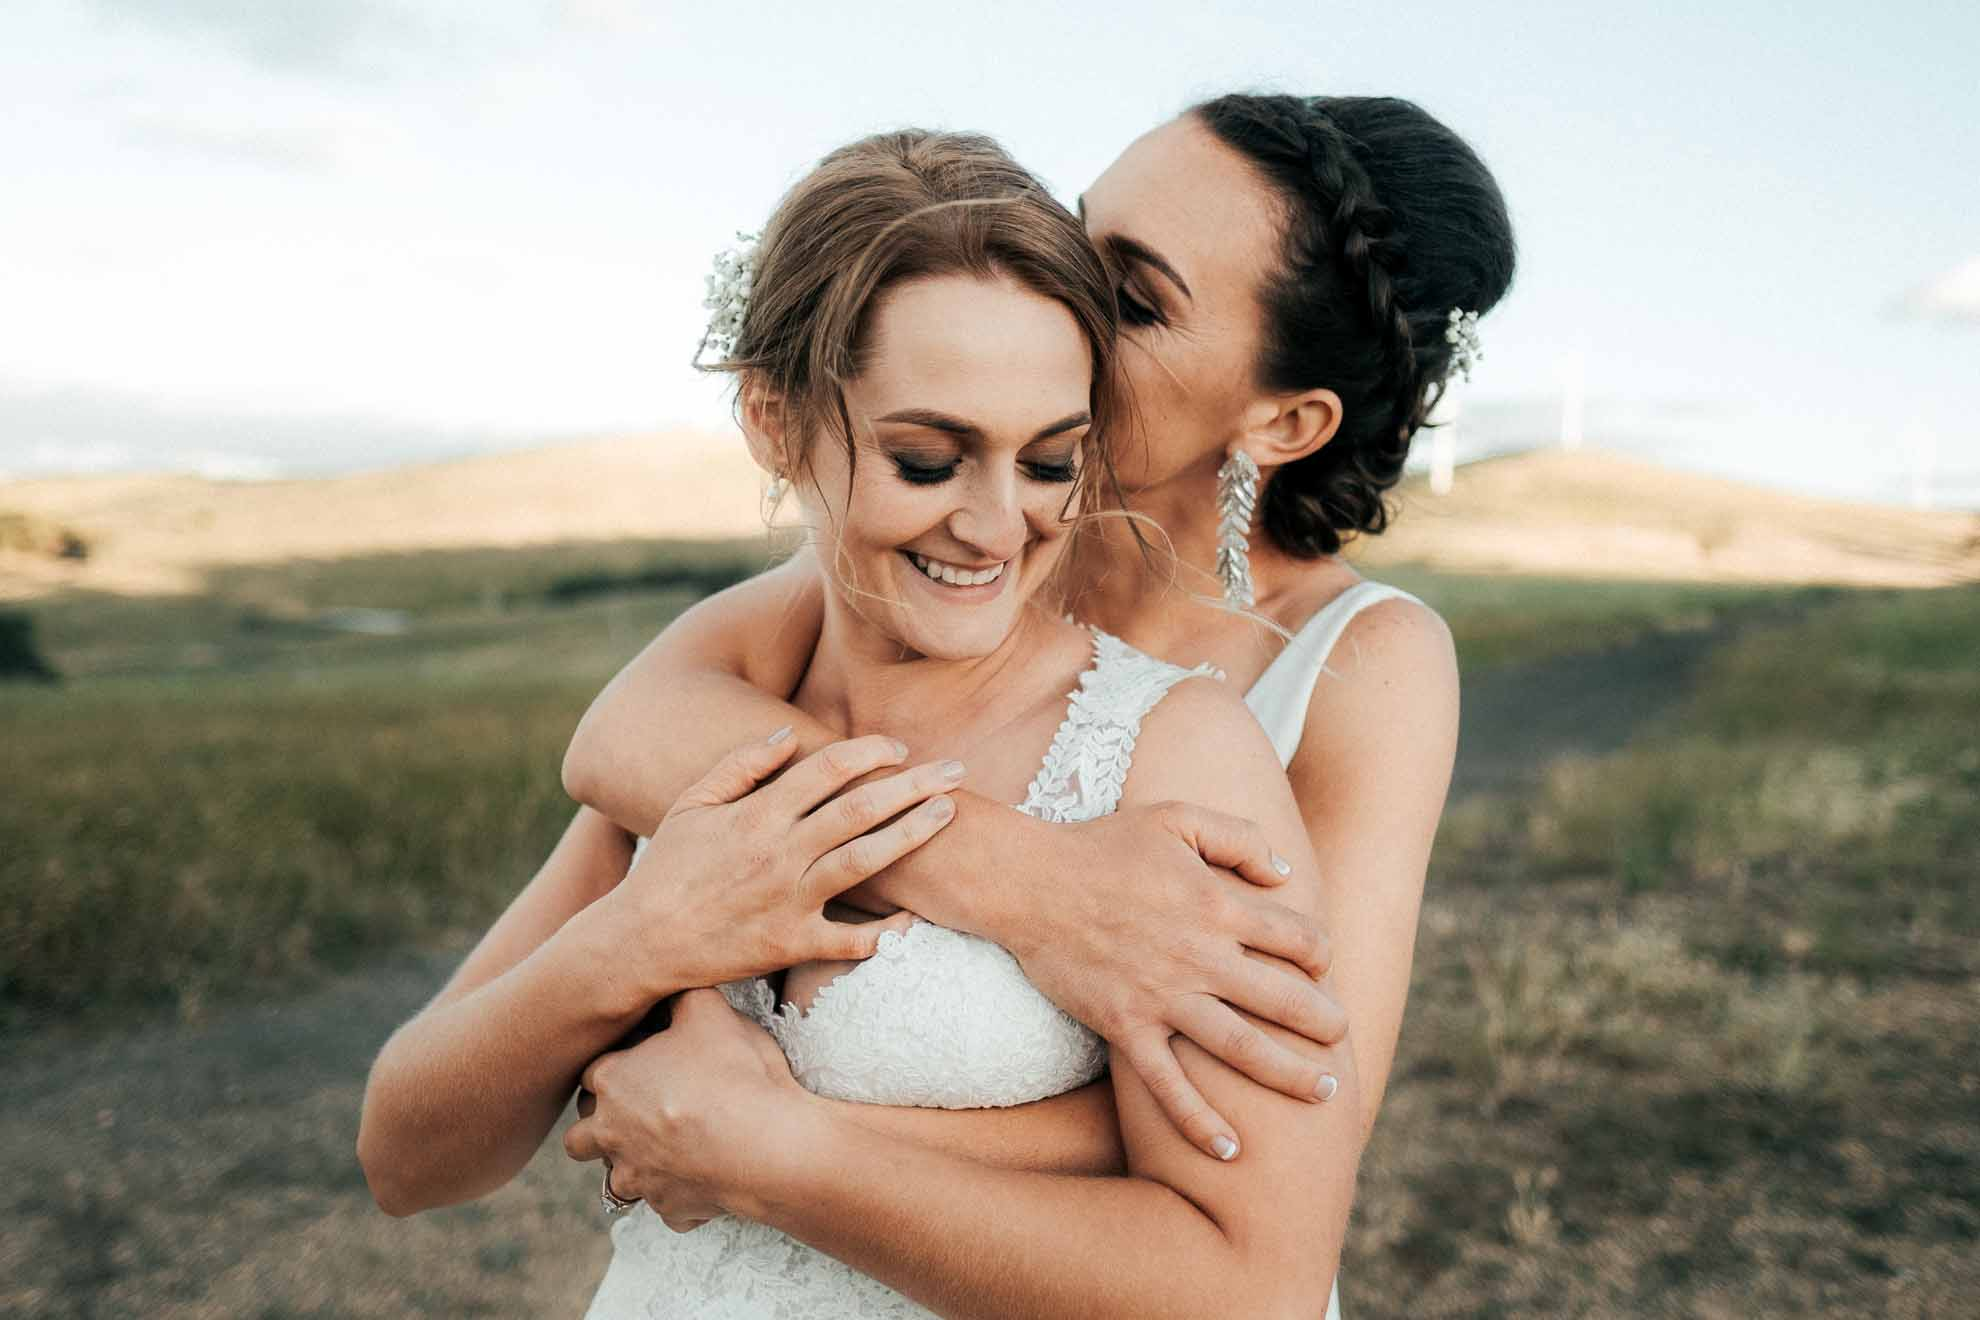 Henry Paul Photography lesbian lgbtq+ Australian farm country wedding New South Wales Dancing With Her magazine